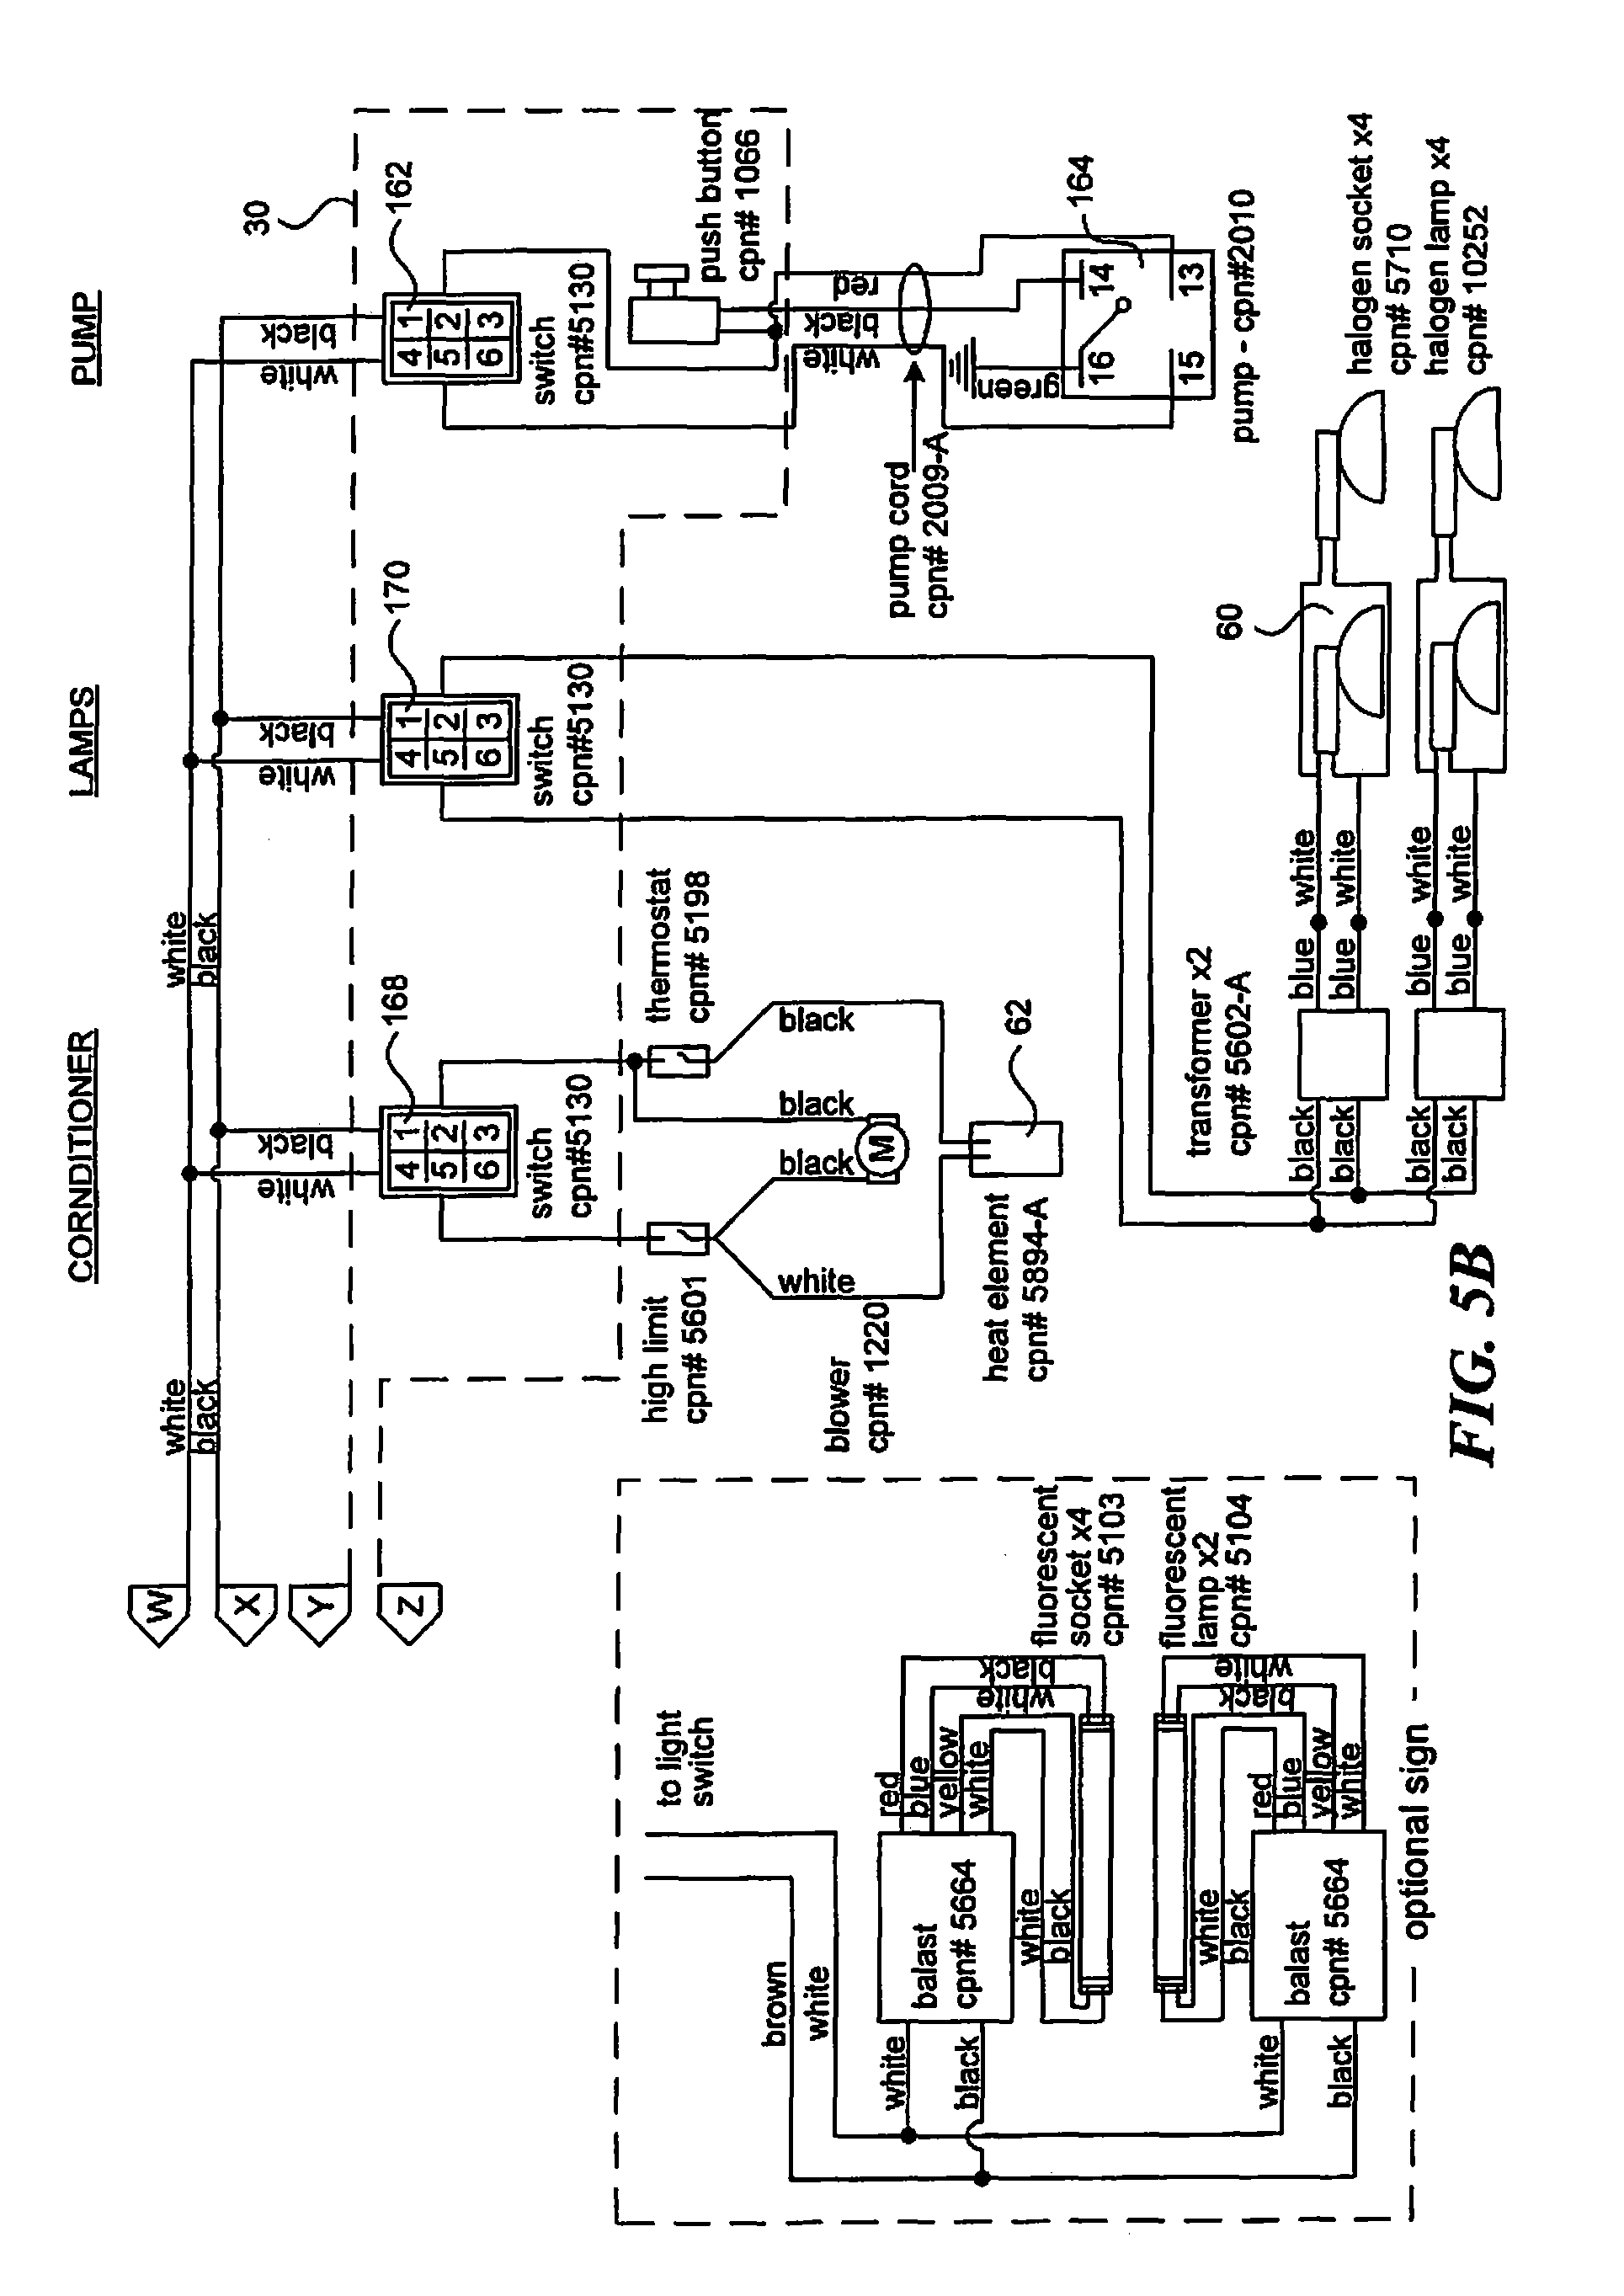 Ansul Hood Wiring Diagram from schematron.org